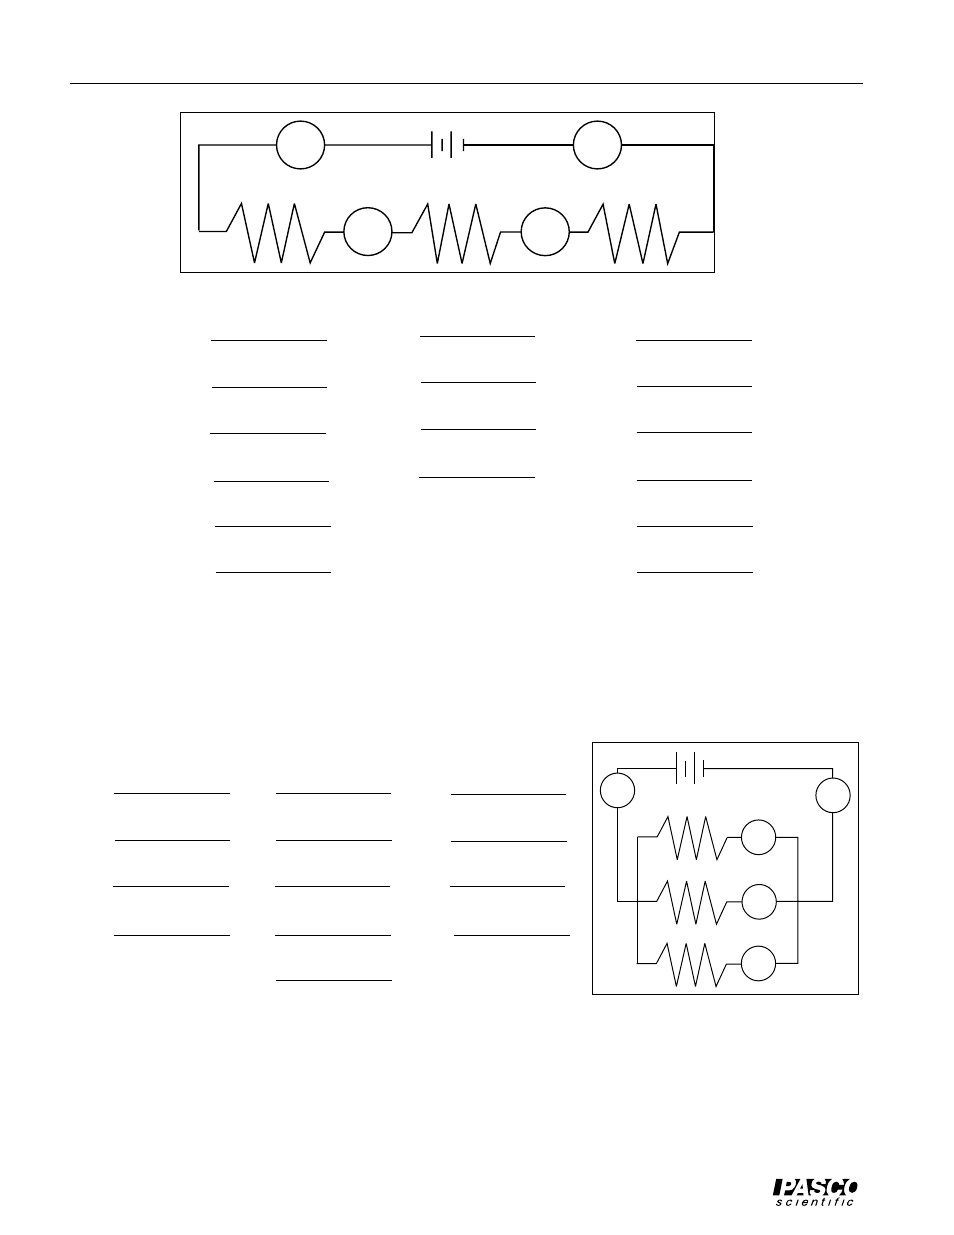 Parallel Discussion Pasco Em 8622 Basic Electricity User Manual Basicelectricity Page 24 44